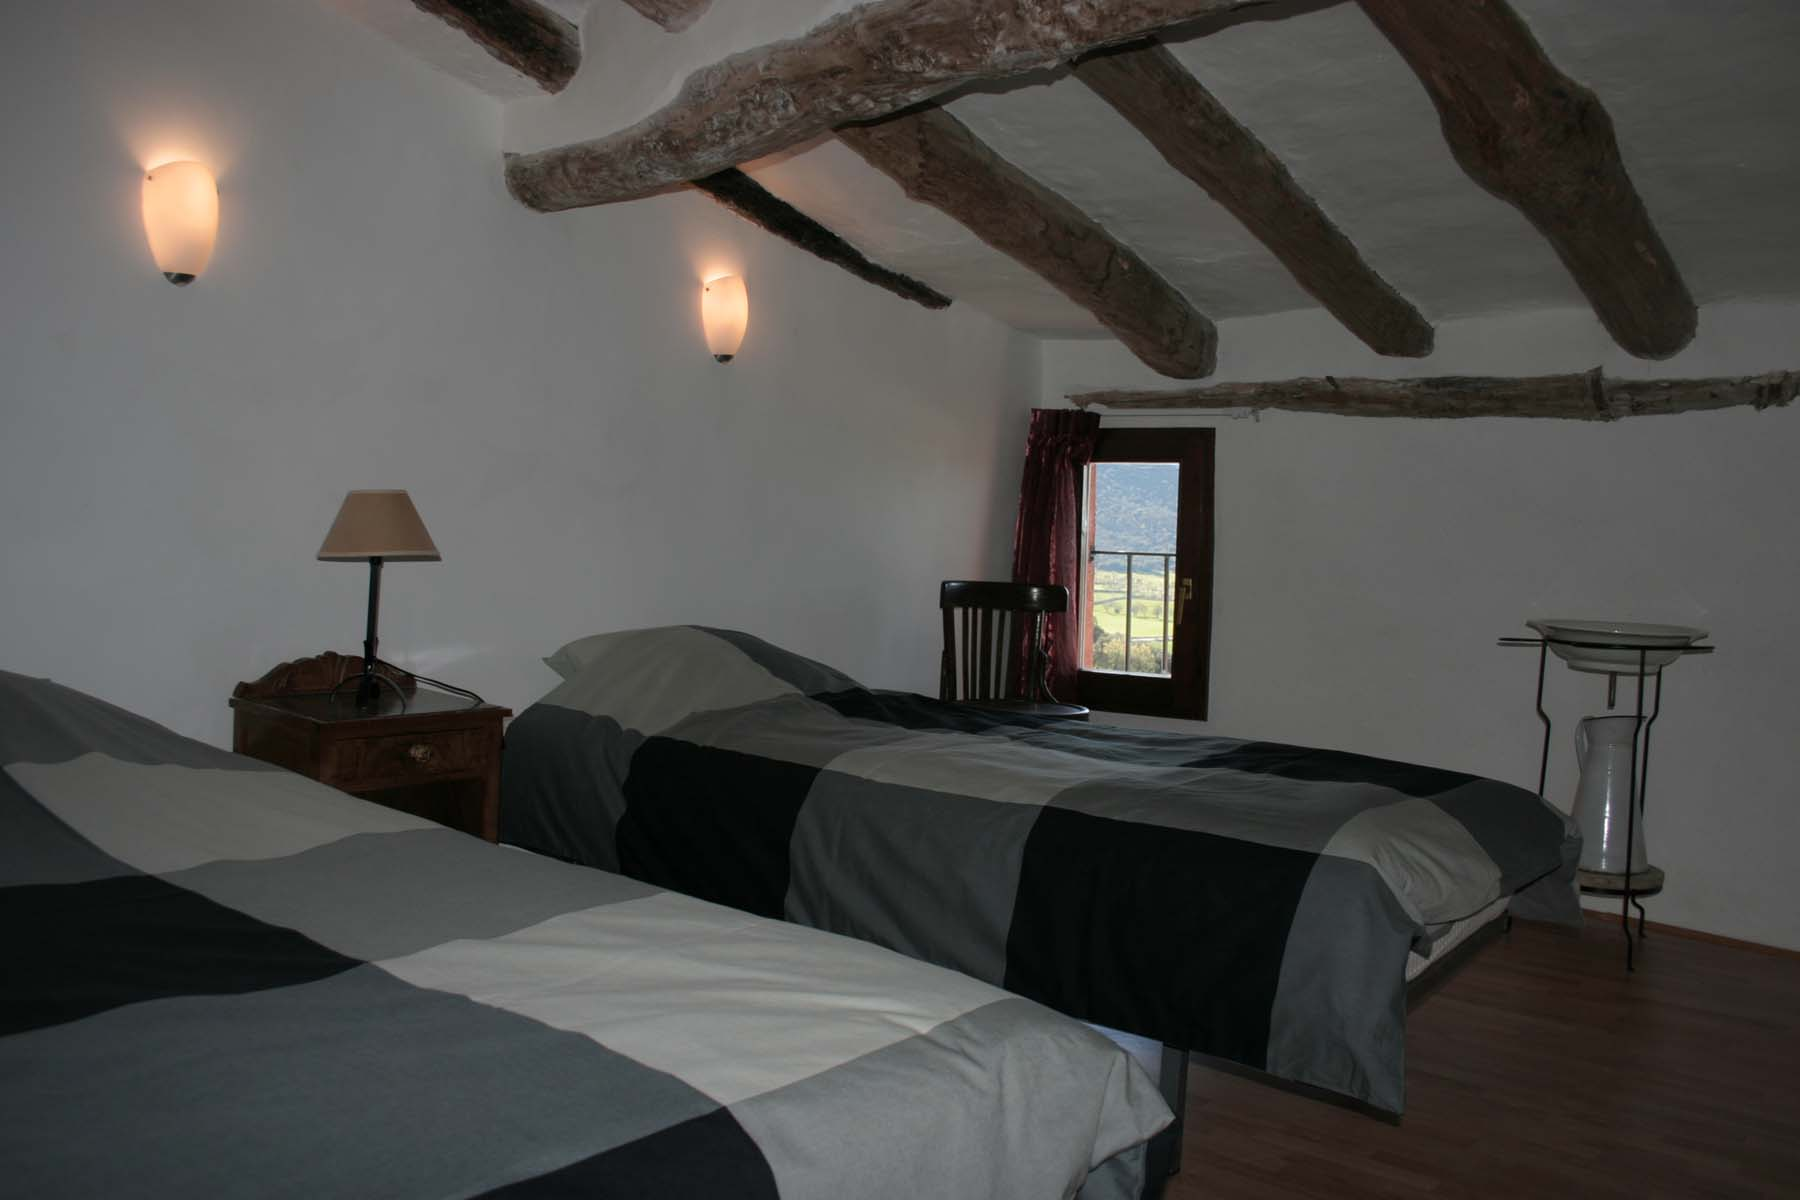 Noguera bedroom